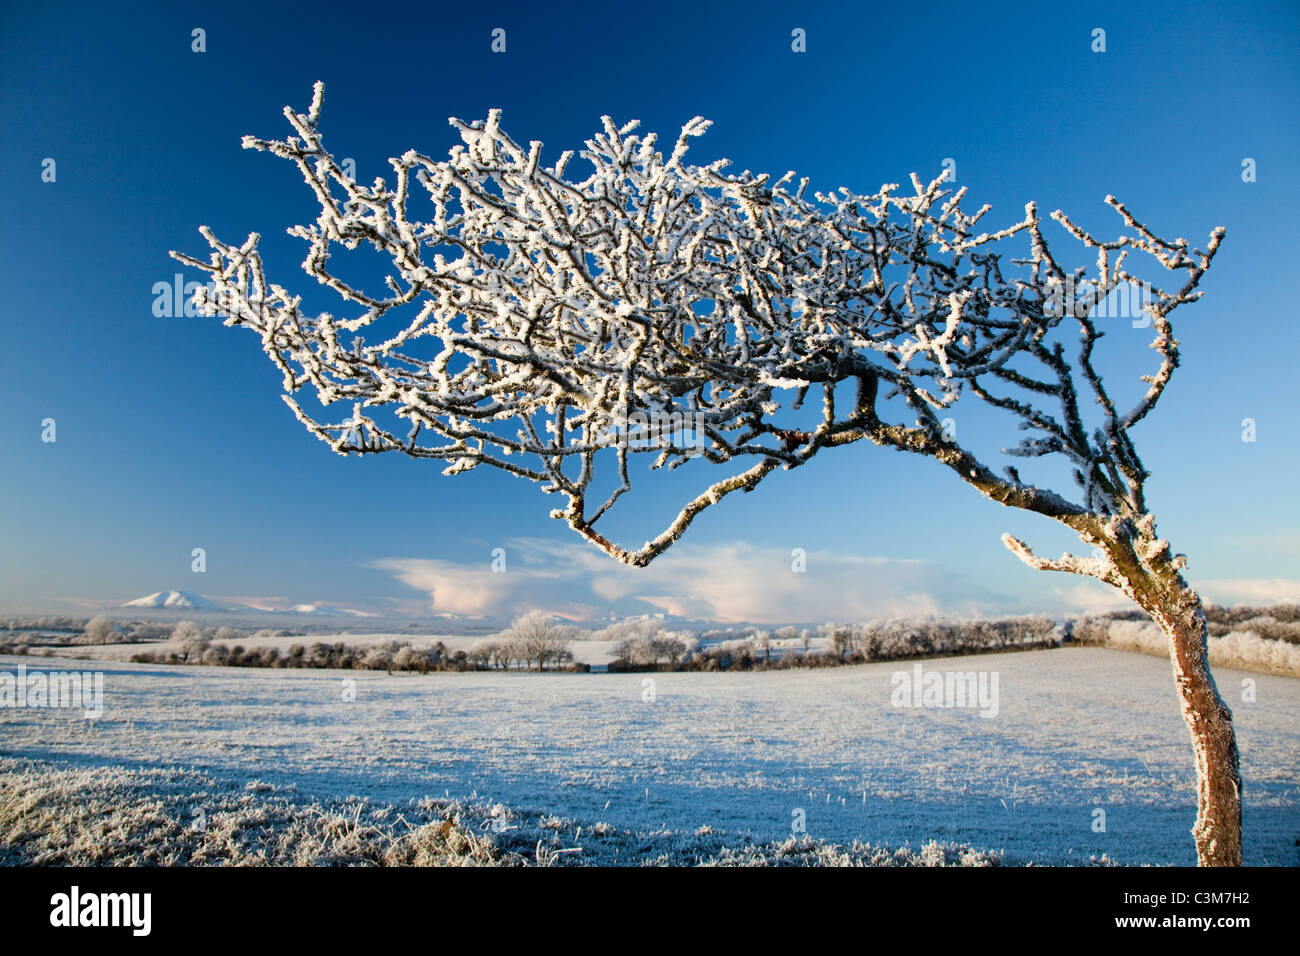 Wind-bent hawthorn tree covered by winter hoar frost, County Sligo, Ireland. - Stock Image